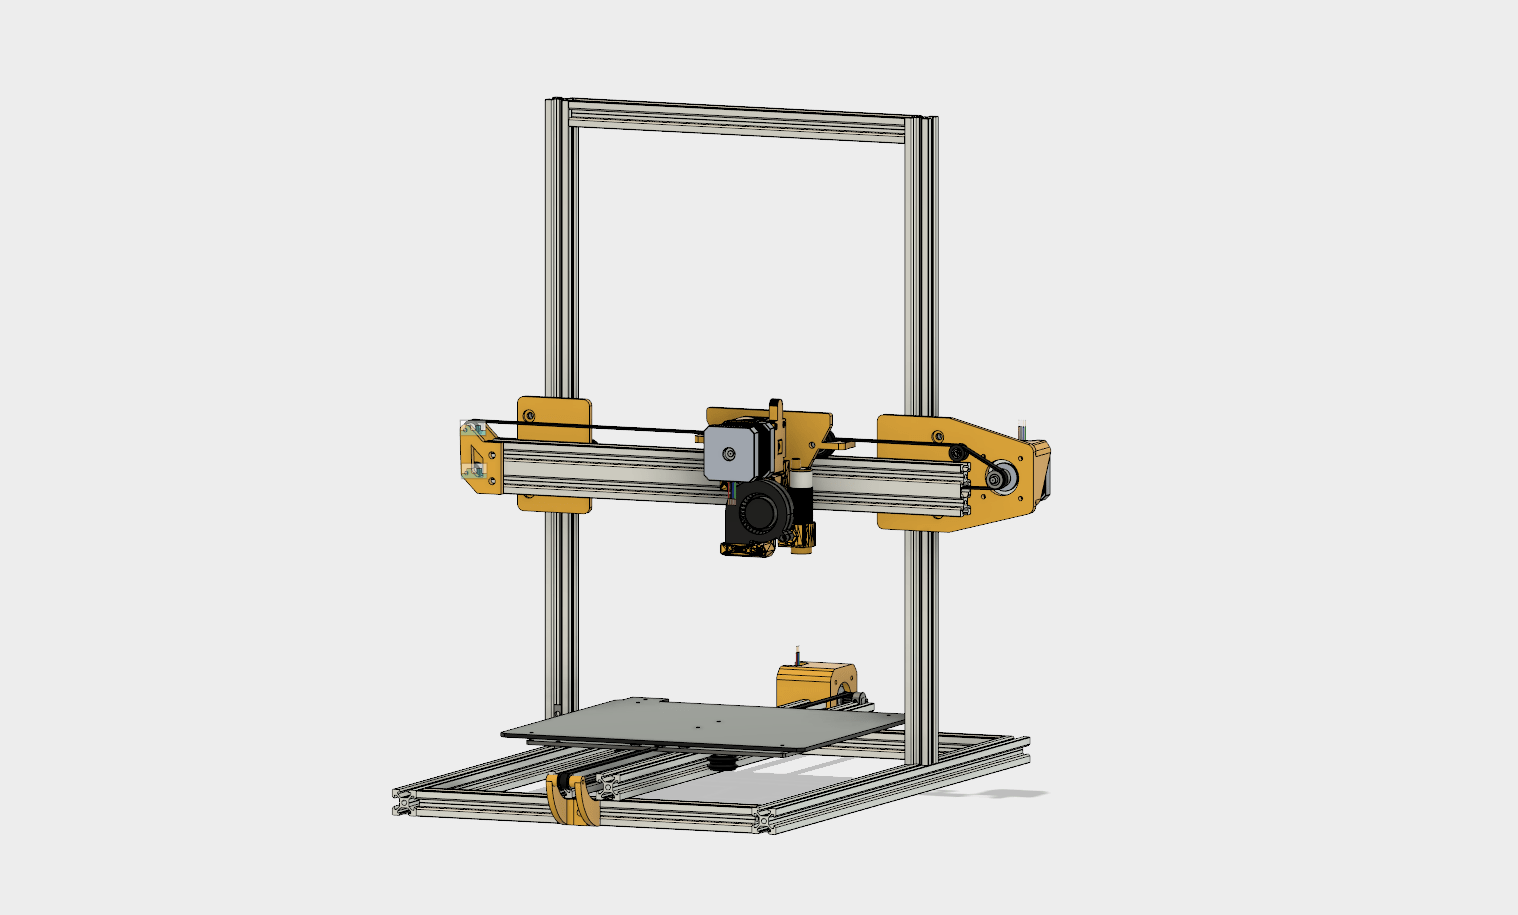 Can I Get Your Opinion On My 3d Printer Design 3dprinting